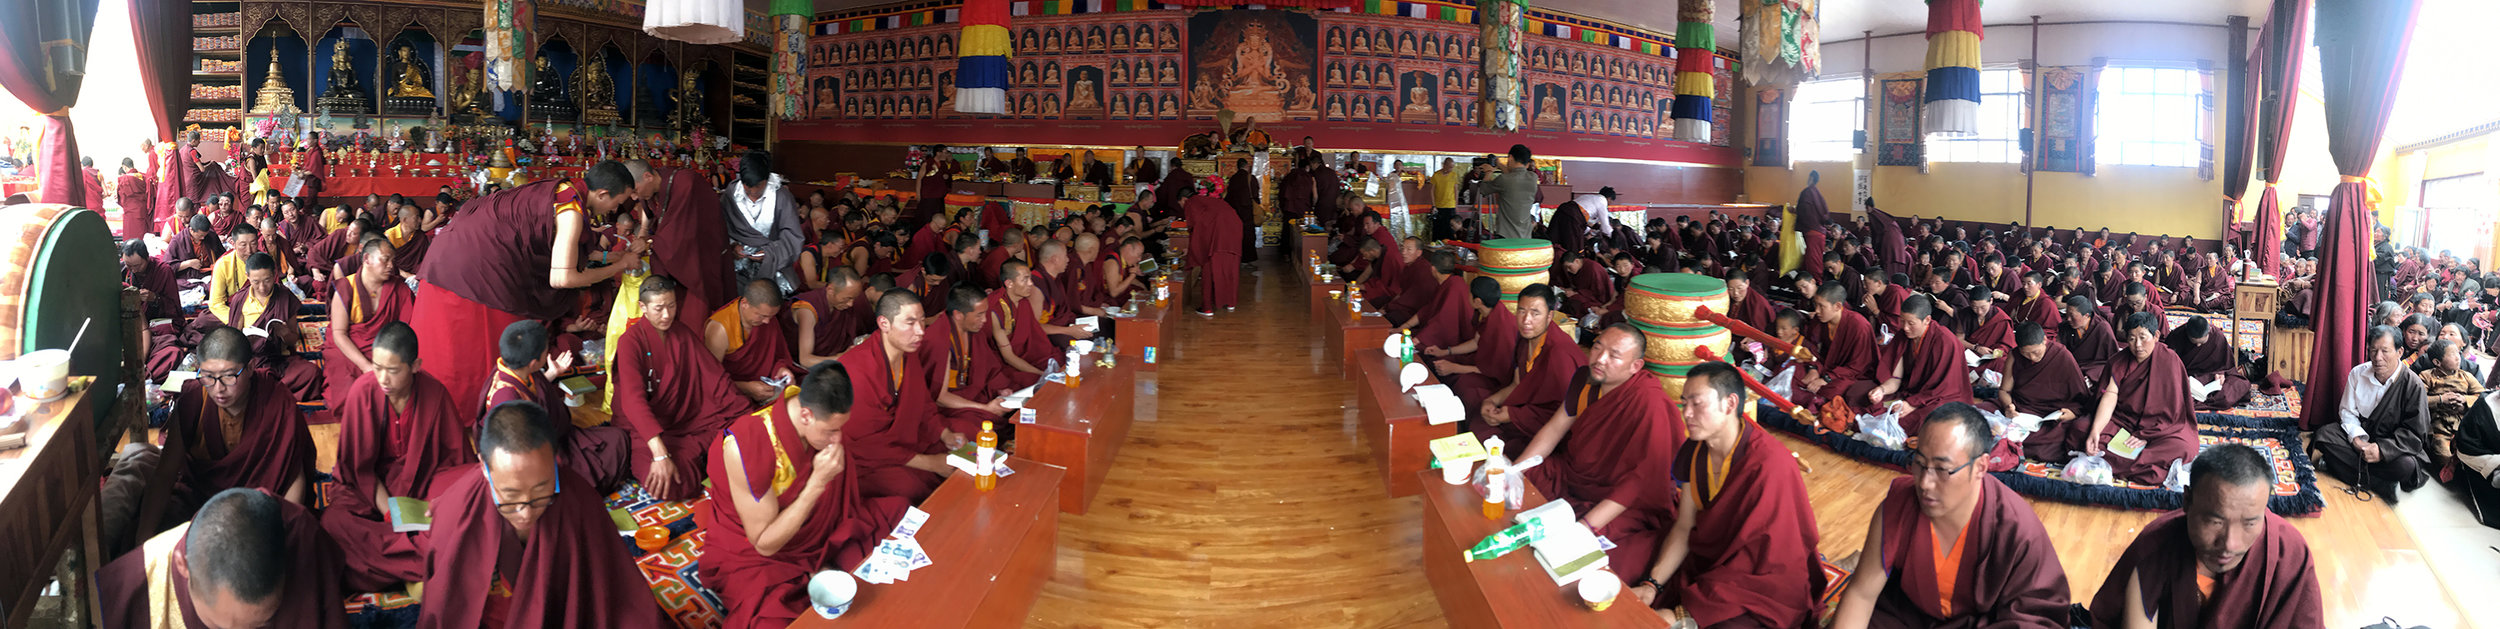 Choegon Rinpoche bestowing teachings and empowerments to thousands of Drukpa Kargyu sanghas and lay practitioners at various monasteries in Nangchen.